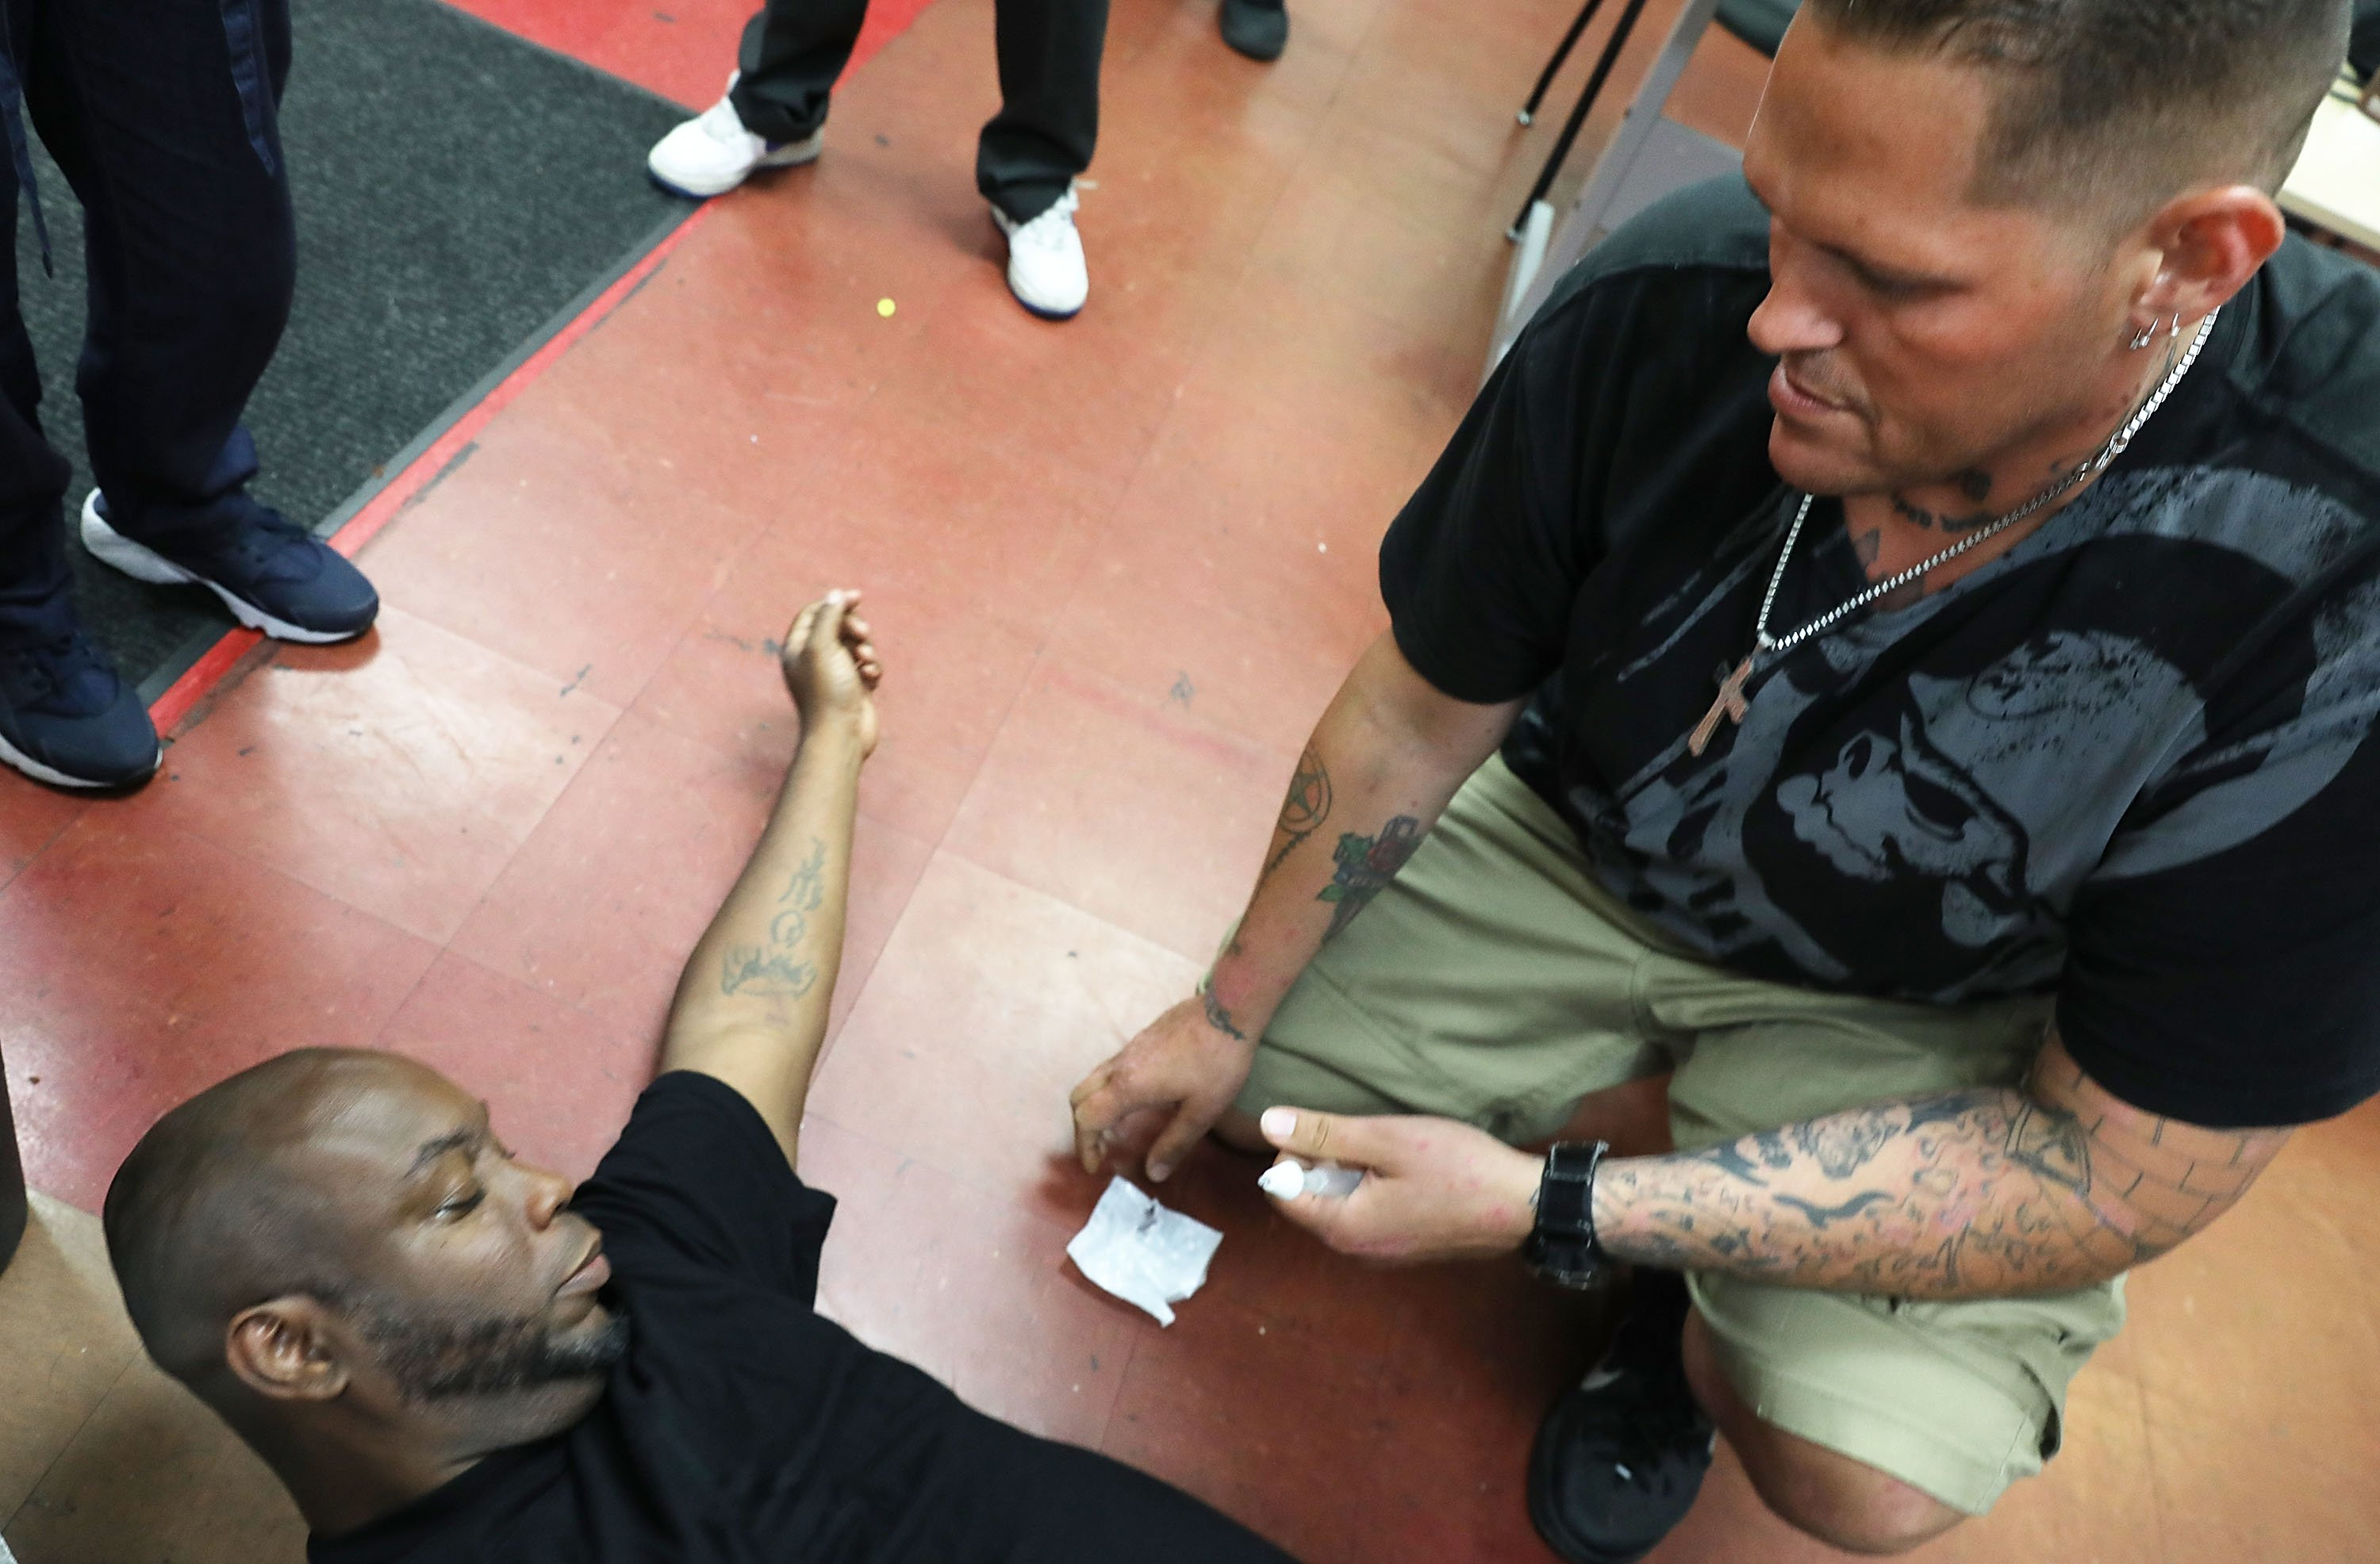 Justin, a participant in a class on opioid overdose prevention held by non-profit Positive Health Project, practices with Naloxone on teacher Kieth Allen on August 9, 2017 in New York City. (Photo by Spencer Platt/Getty Images)`